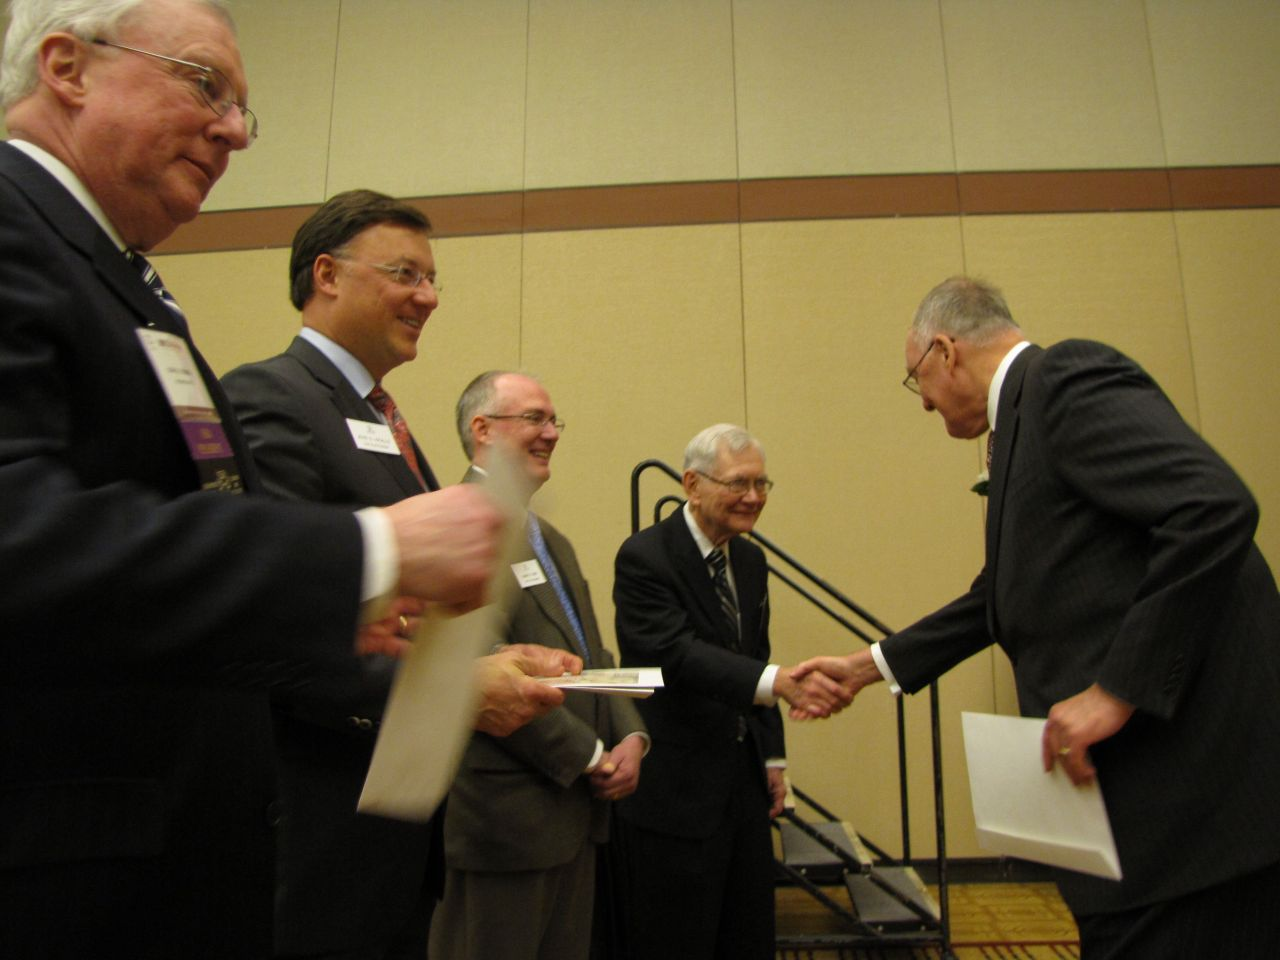 Former Gov. Jim Thompson receives his certificate as a member of the 1959 Class of Senior Counsellors.